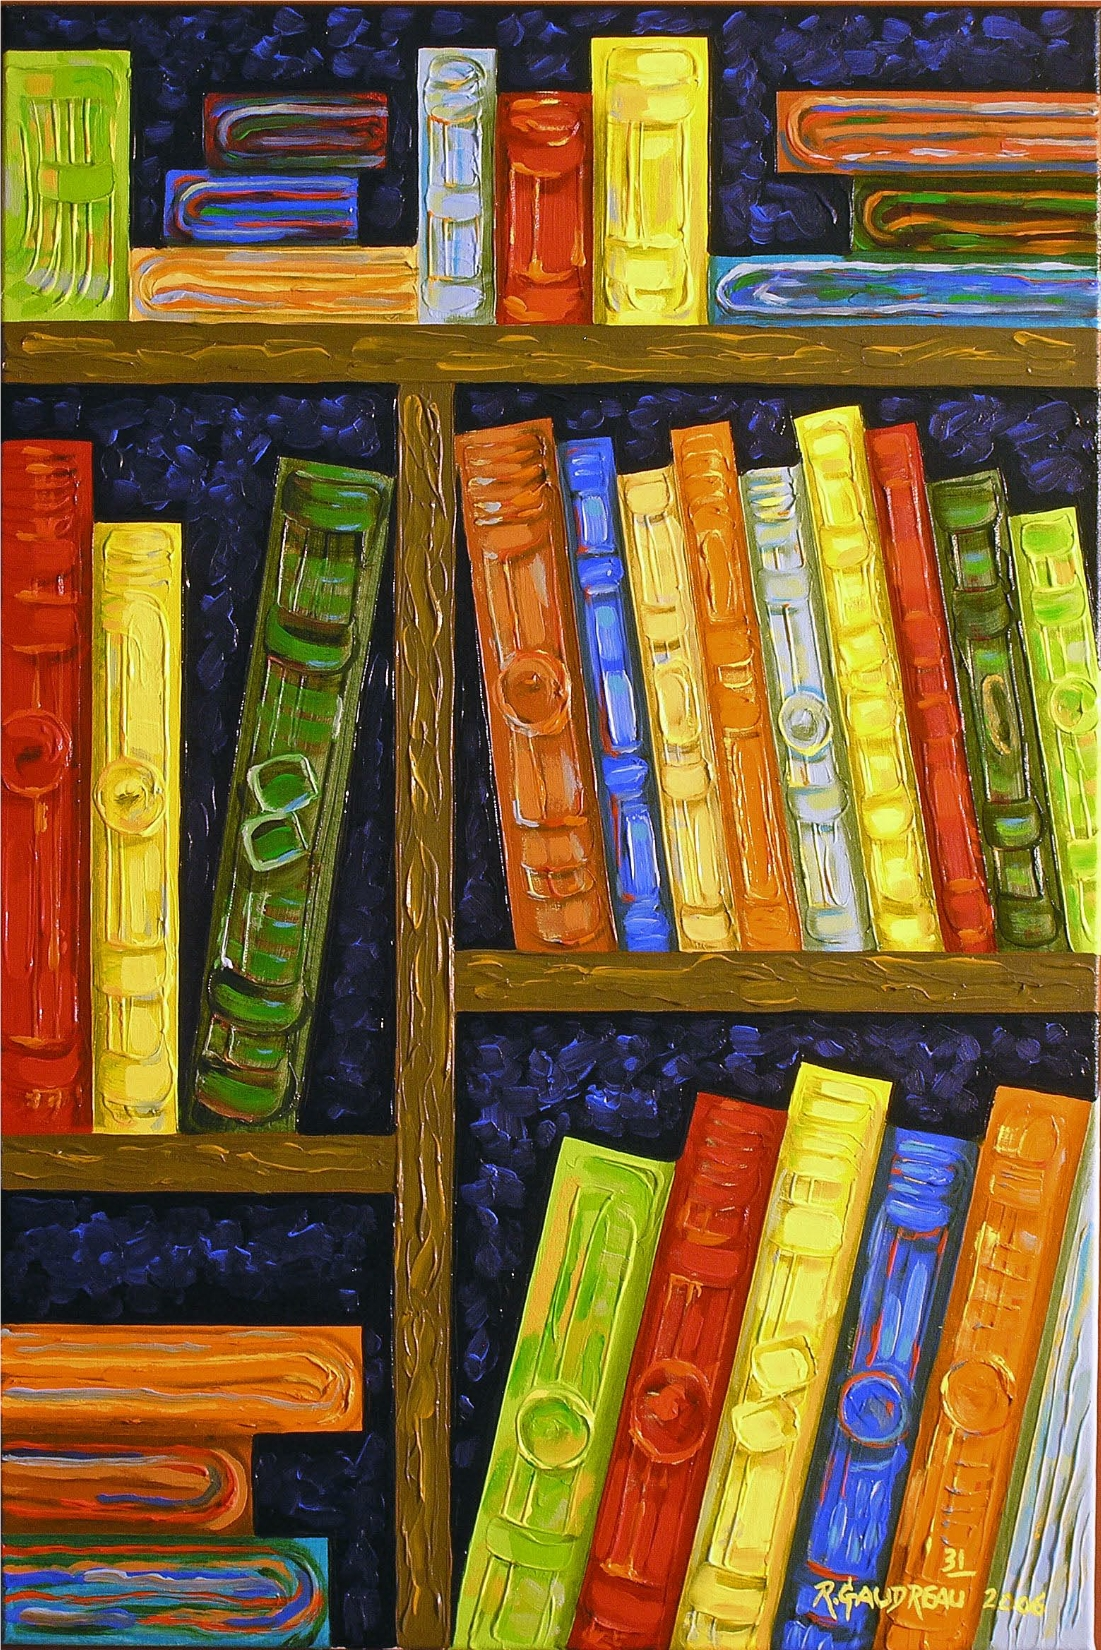 31  Books 2006 oil on canvas 36 x 24 inches